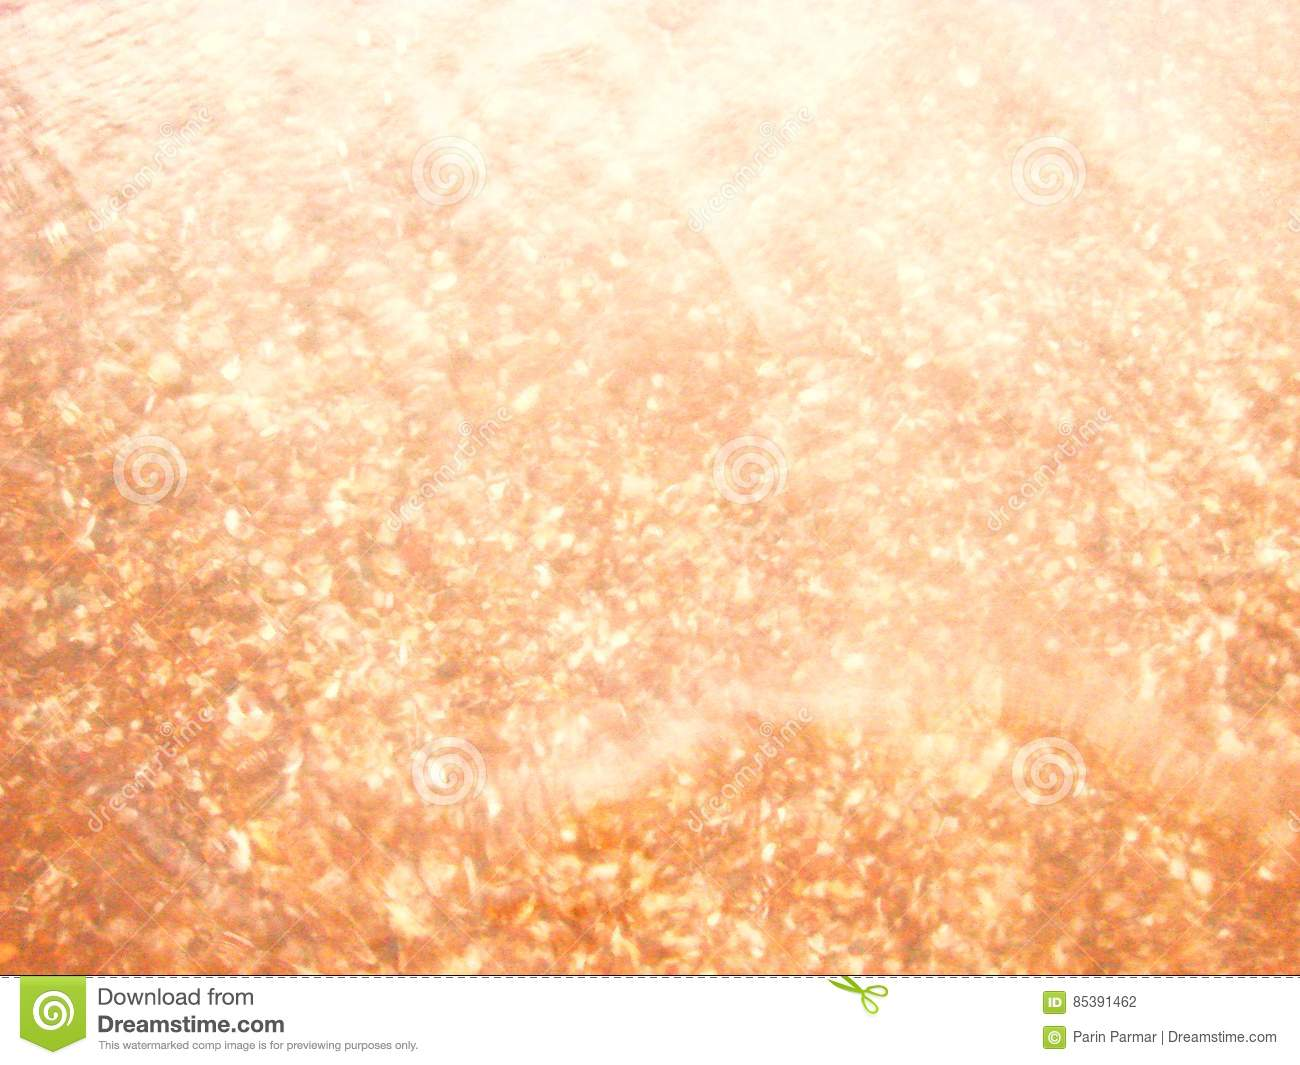 Abstract Background - Light Reflections in Water with Underwater Shells